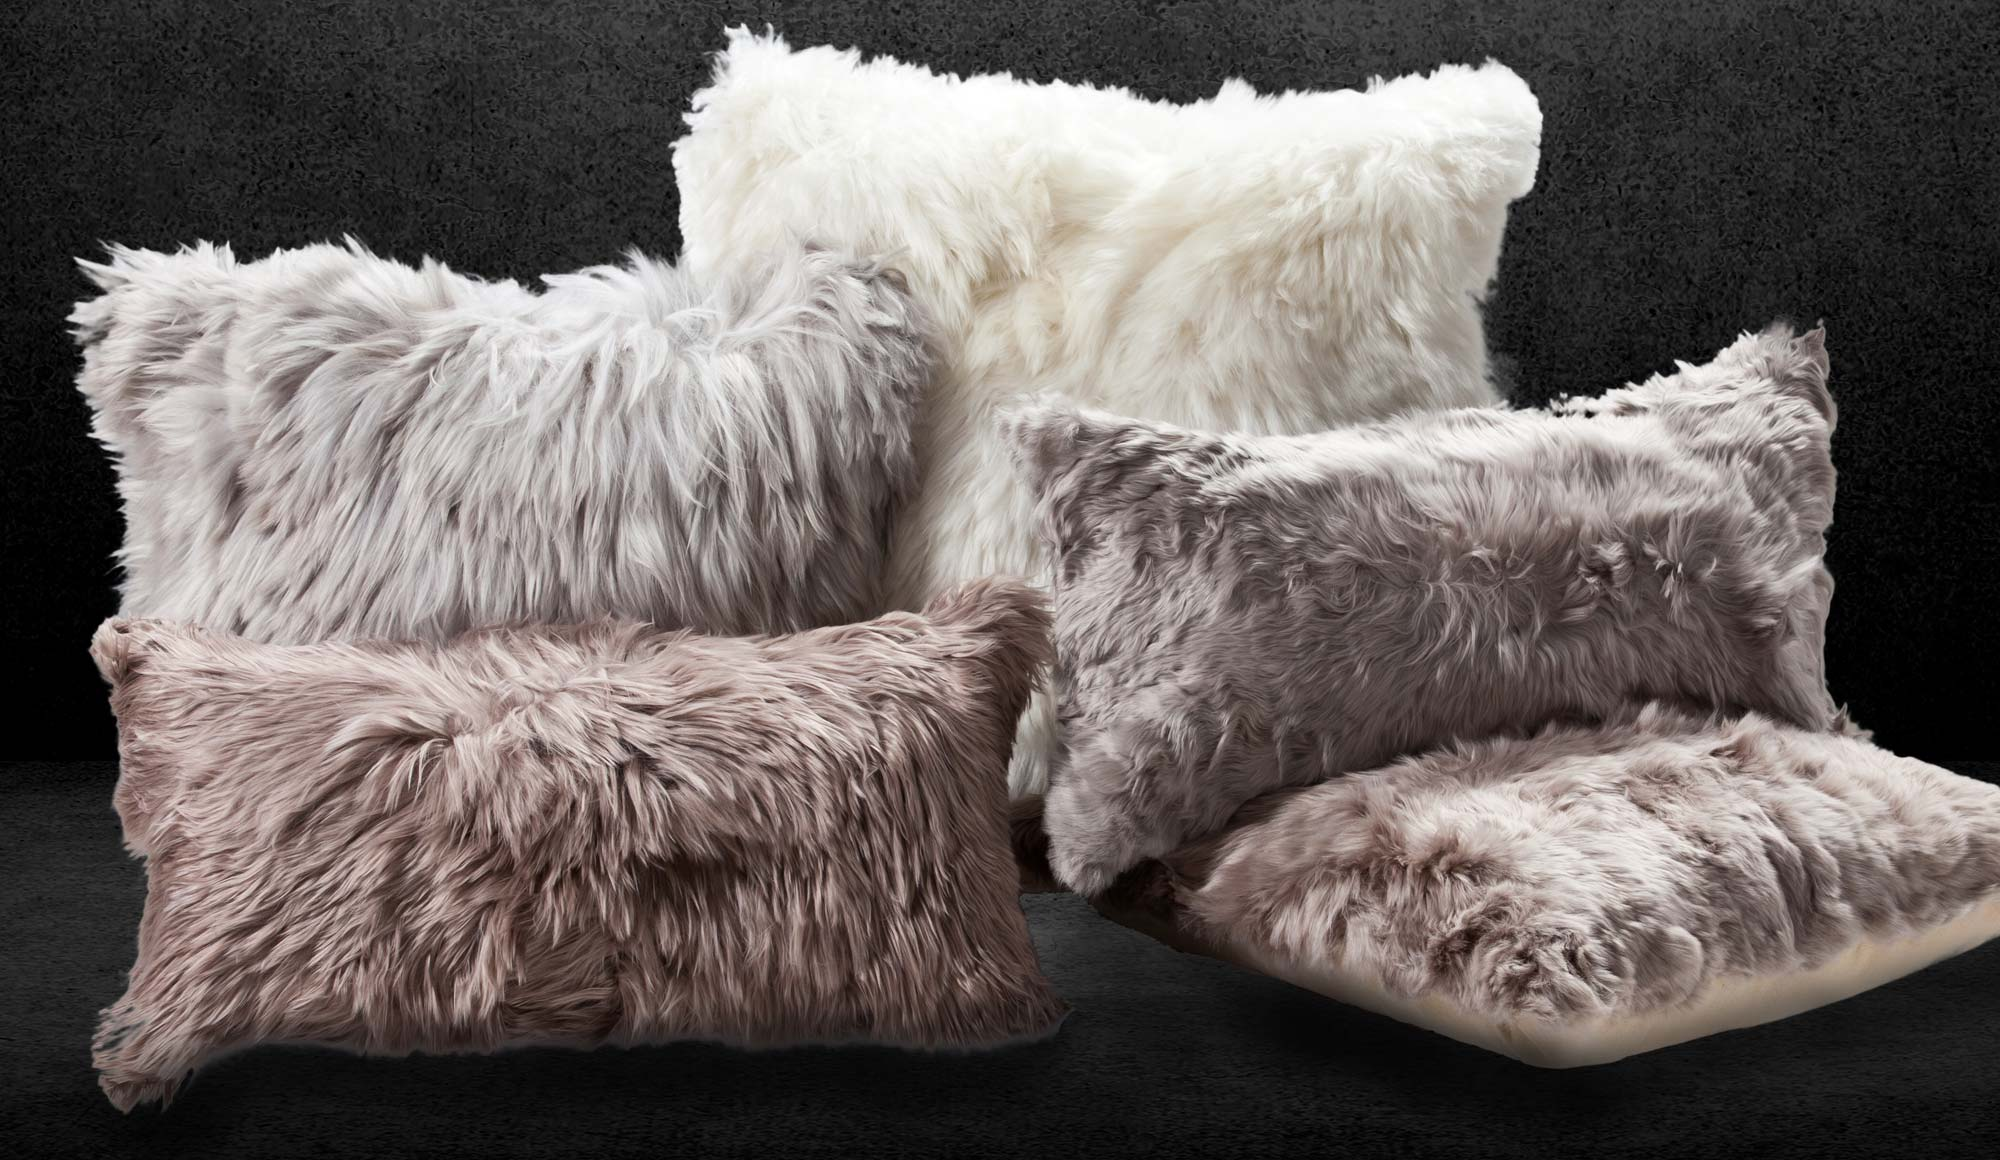 Alpaca Soft Fur Rugs Pillows And Woven Wool Throws Fibre